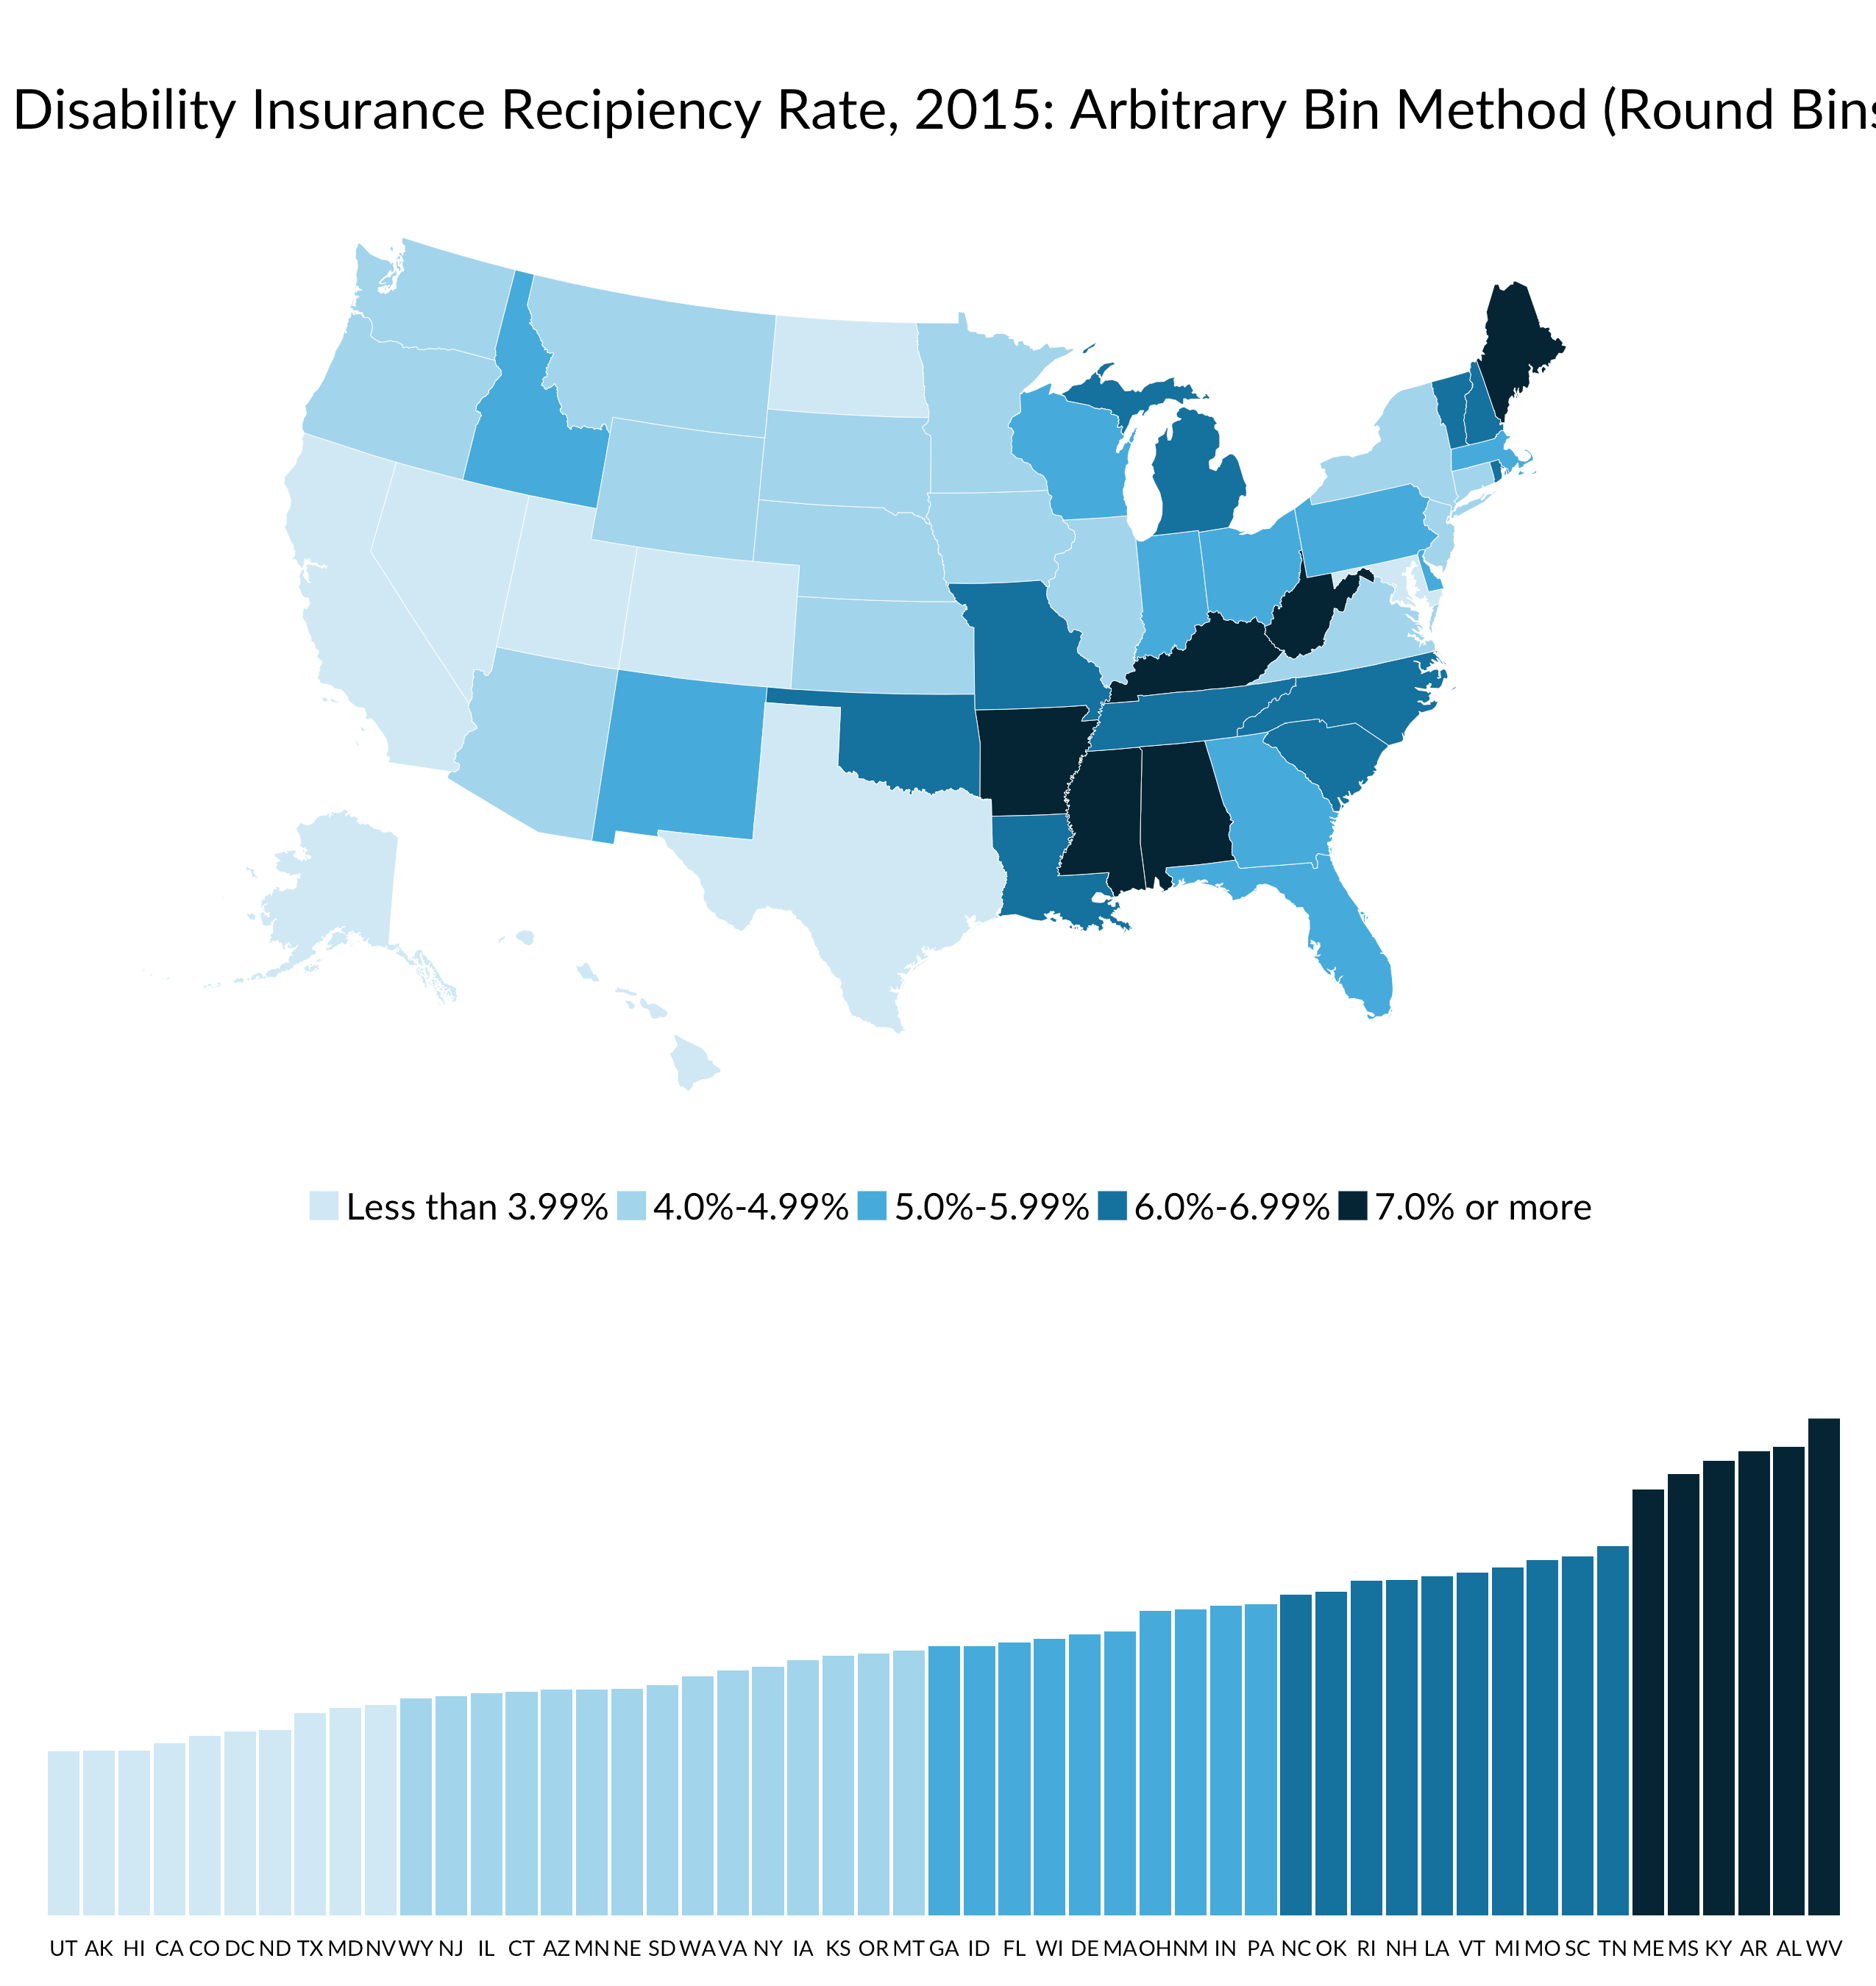 arbitrary bin map of disability insurance recipient rate, 2015 with number of observations included as a bar chart